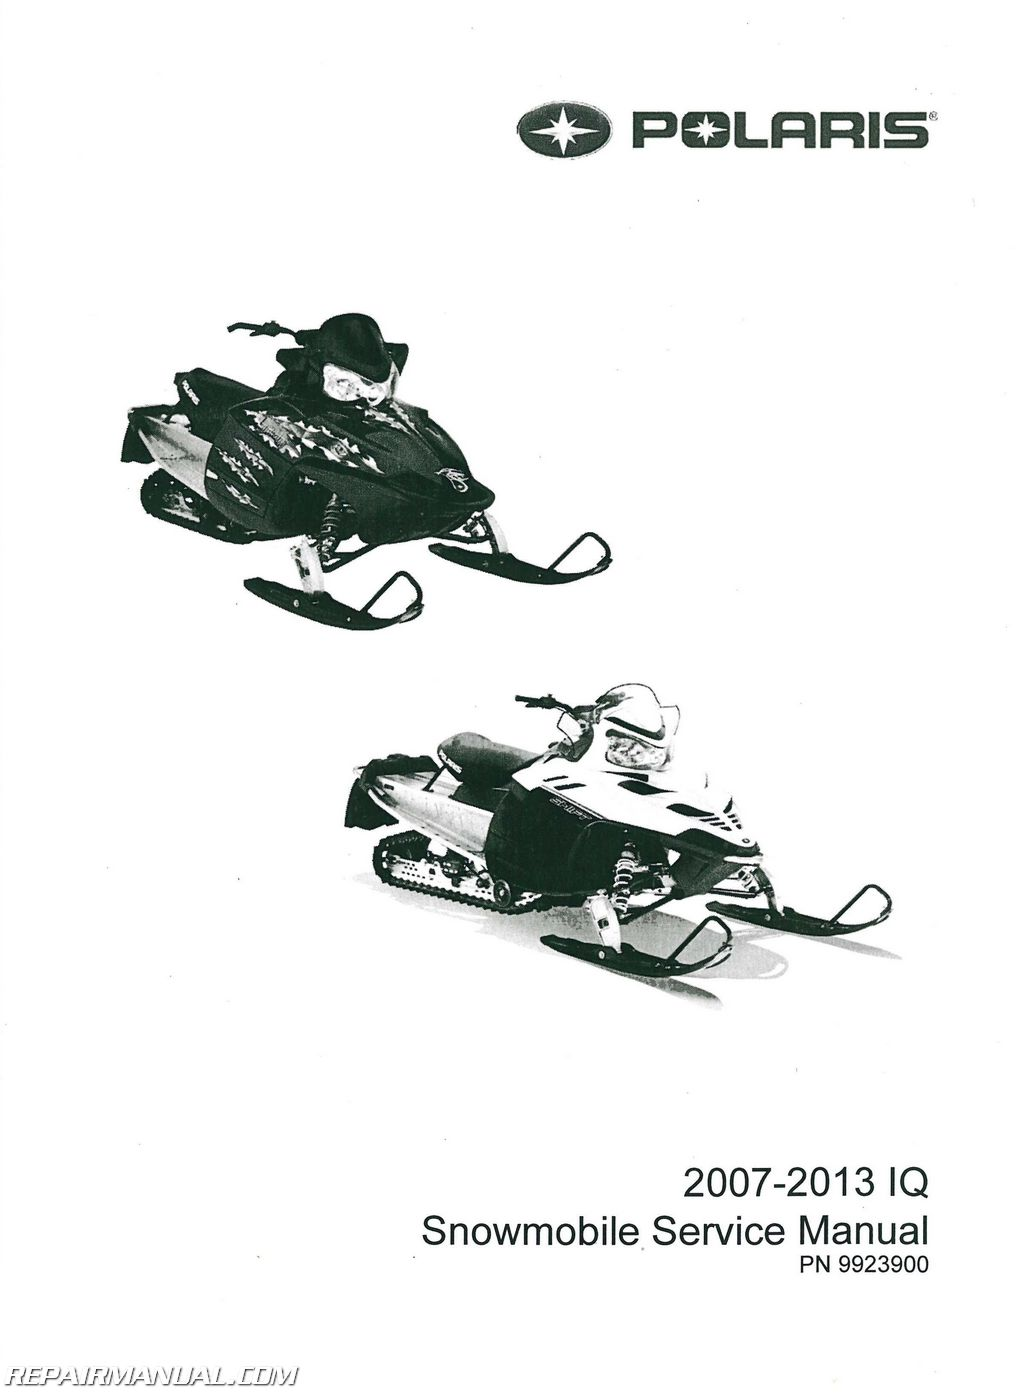 2007-2013 Polaris IQ Snowmobile Service Manual